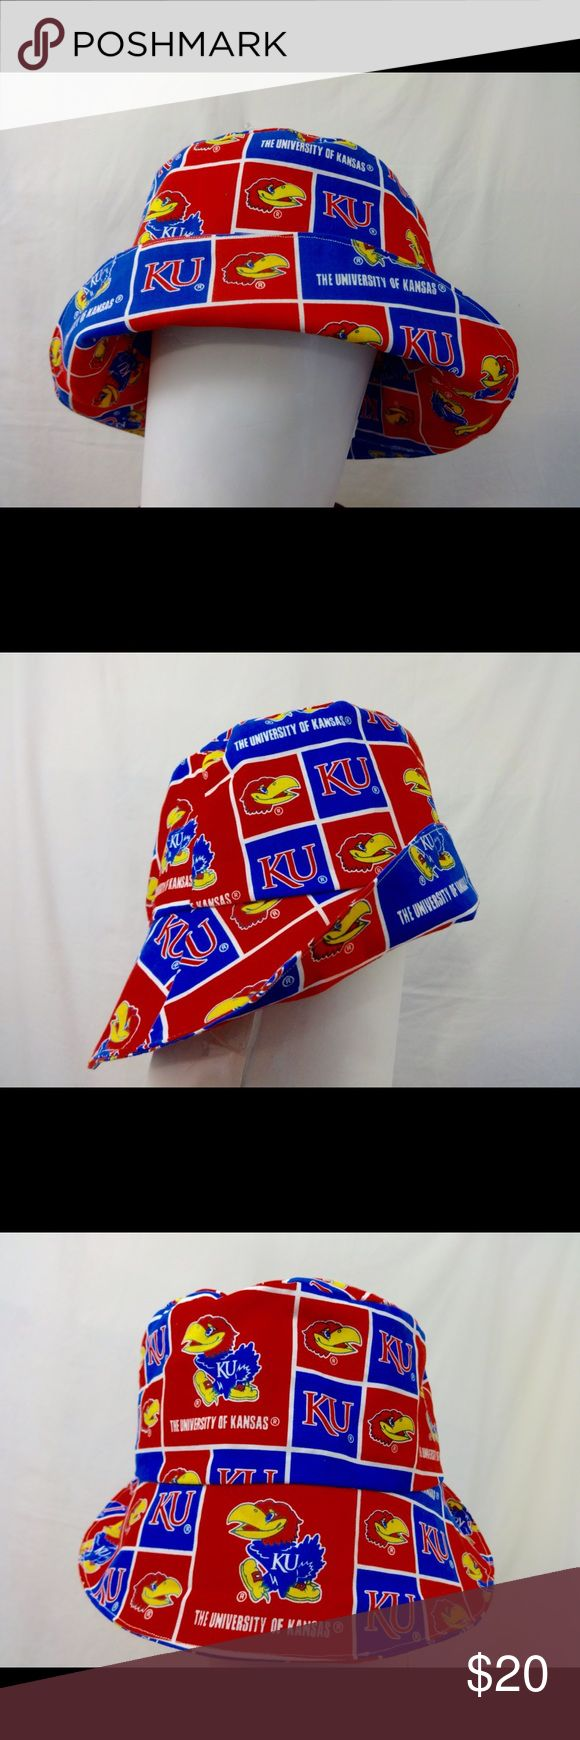 Kansas Jayhawks Bucket Hat Made with NCAA licensed Kansas Jayhawks fabric, this bucket hat fits up to 23 inch head circumference. Brim can be flipped up or down. 100% cotton. Unisex hat for men or women. Leimaj Creations Accessories Hats